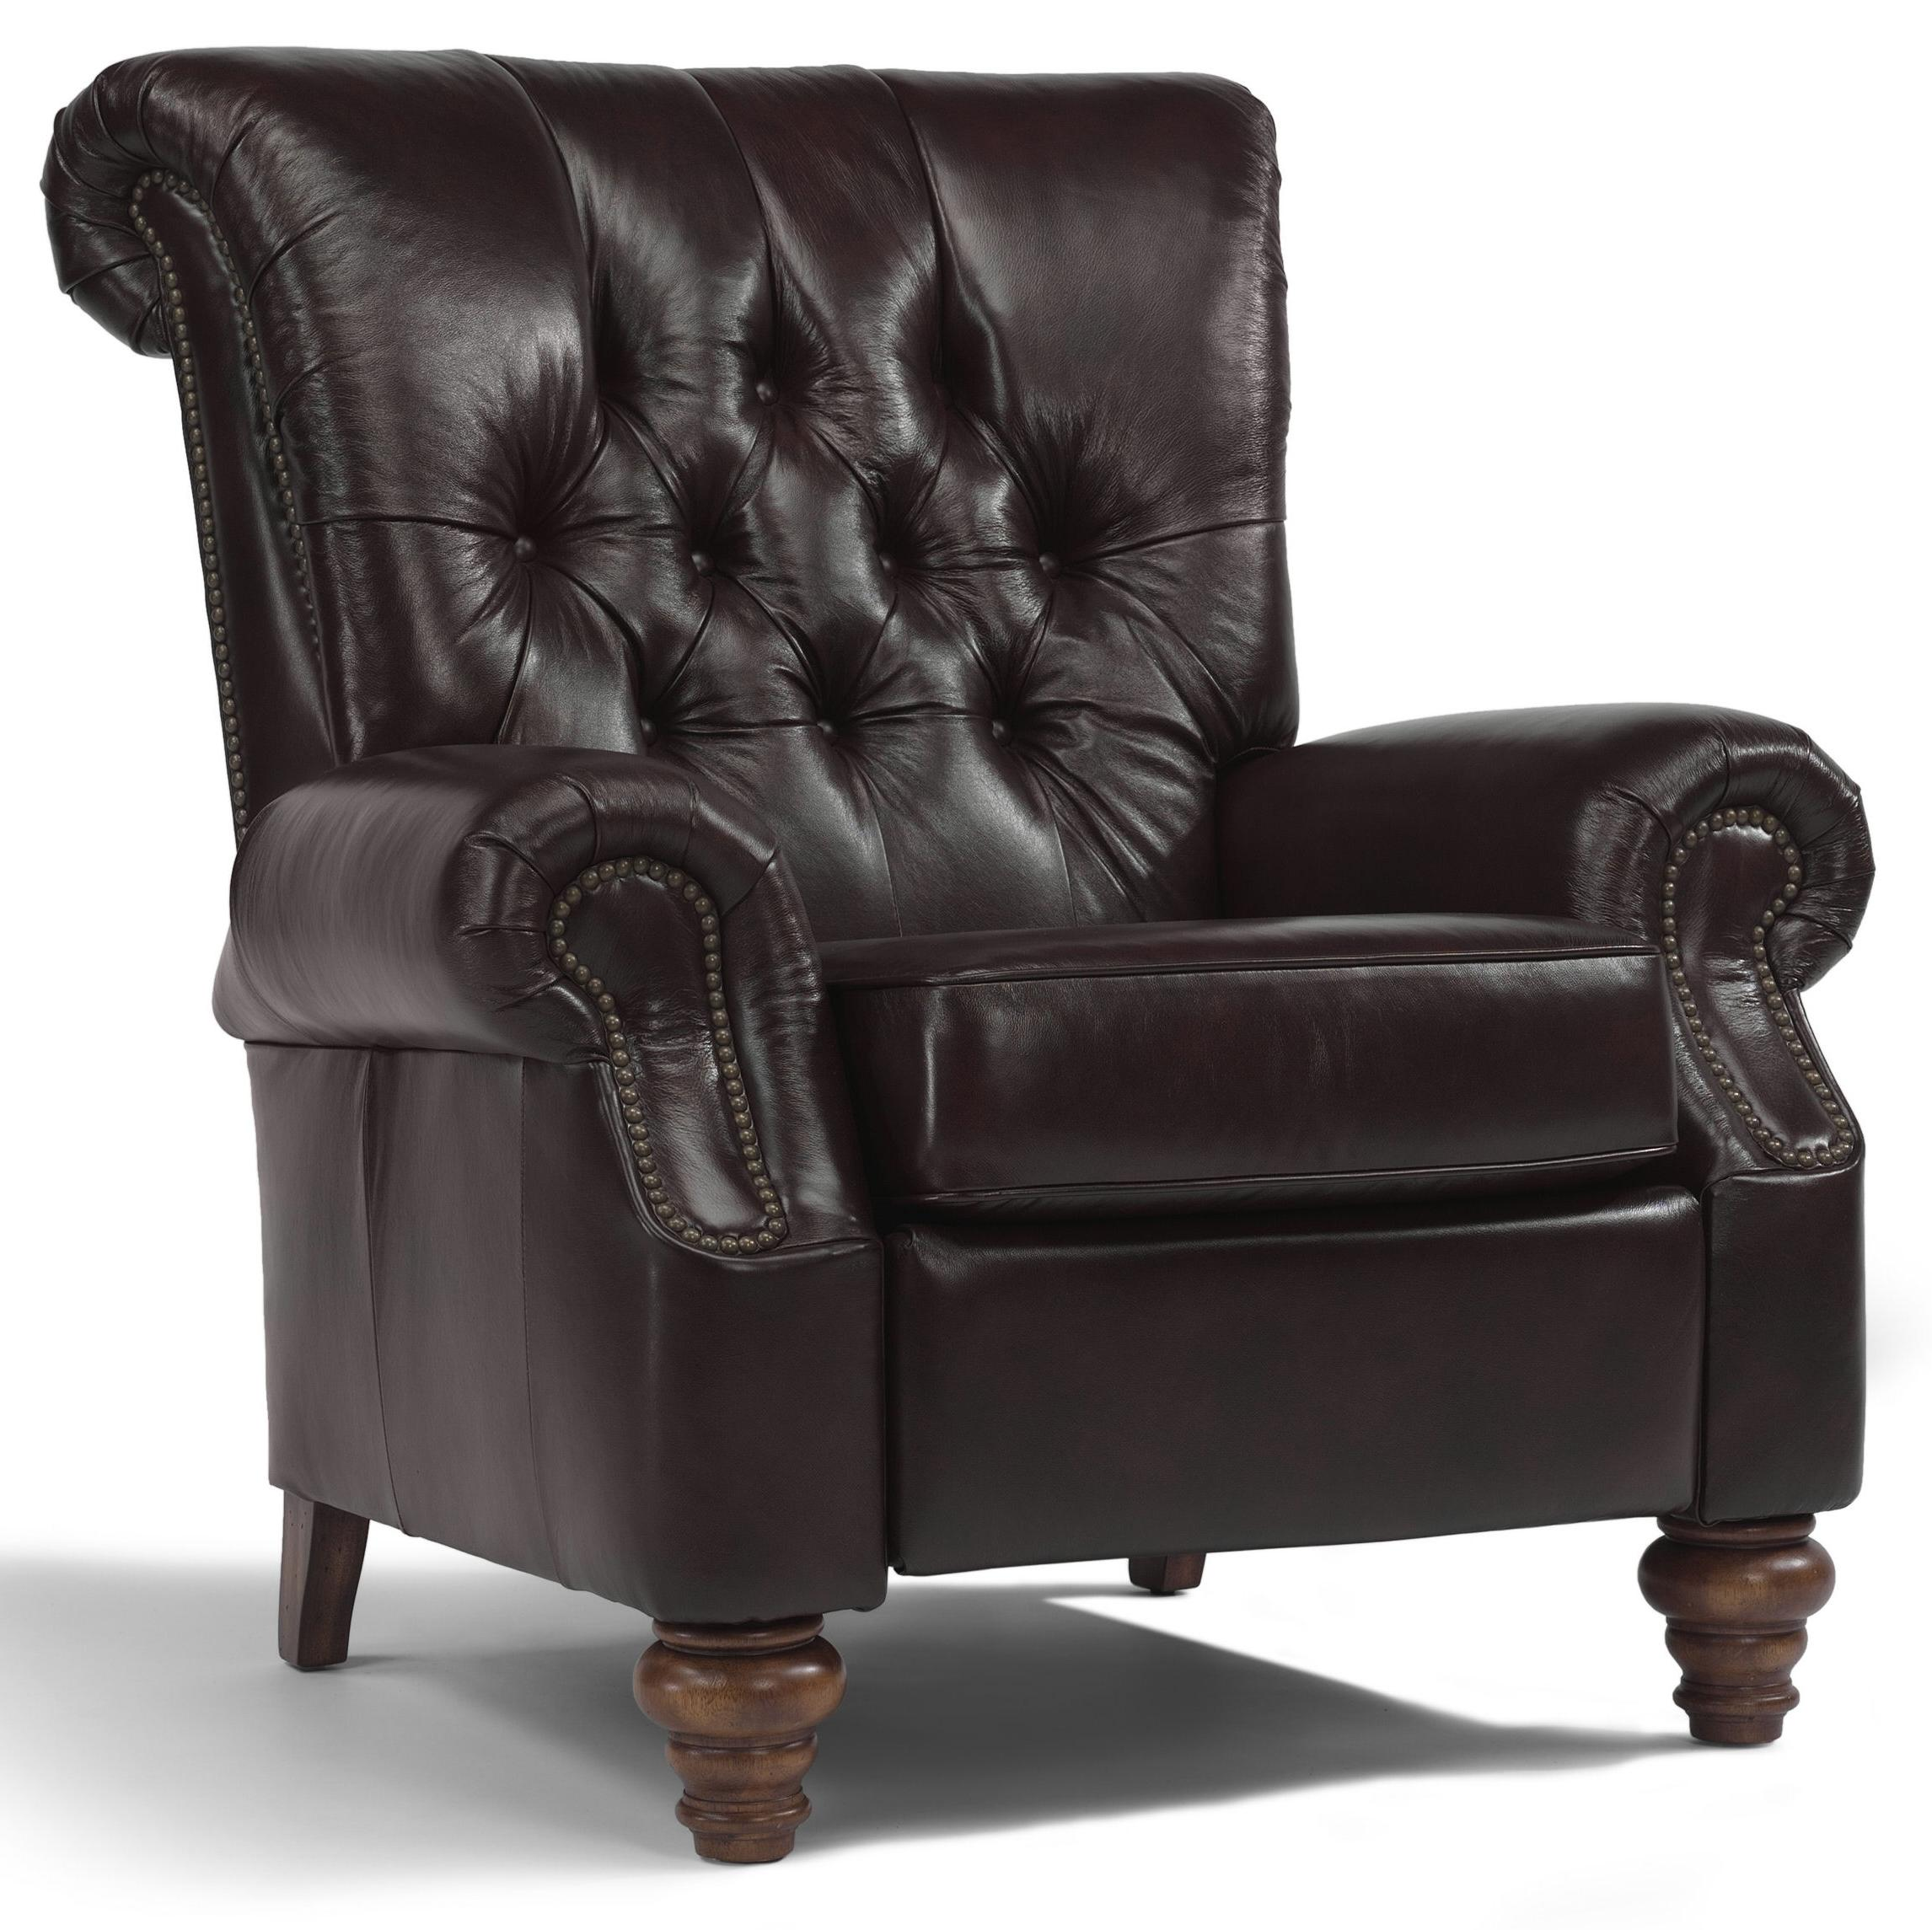 Flexsteel Accents Equestrian High Leg Recliner - Item Number 301R-503L  sc 1 st  Wayside Furniture & Flexsteel Accents Equestrian High Leg Recliner - Wayside Furniture ... islam-shia.org